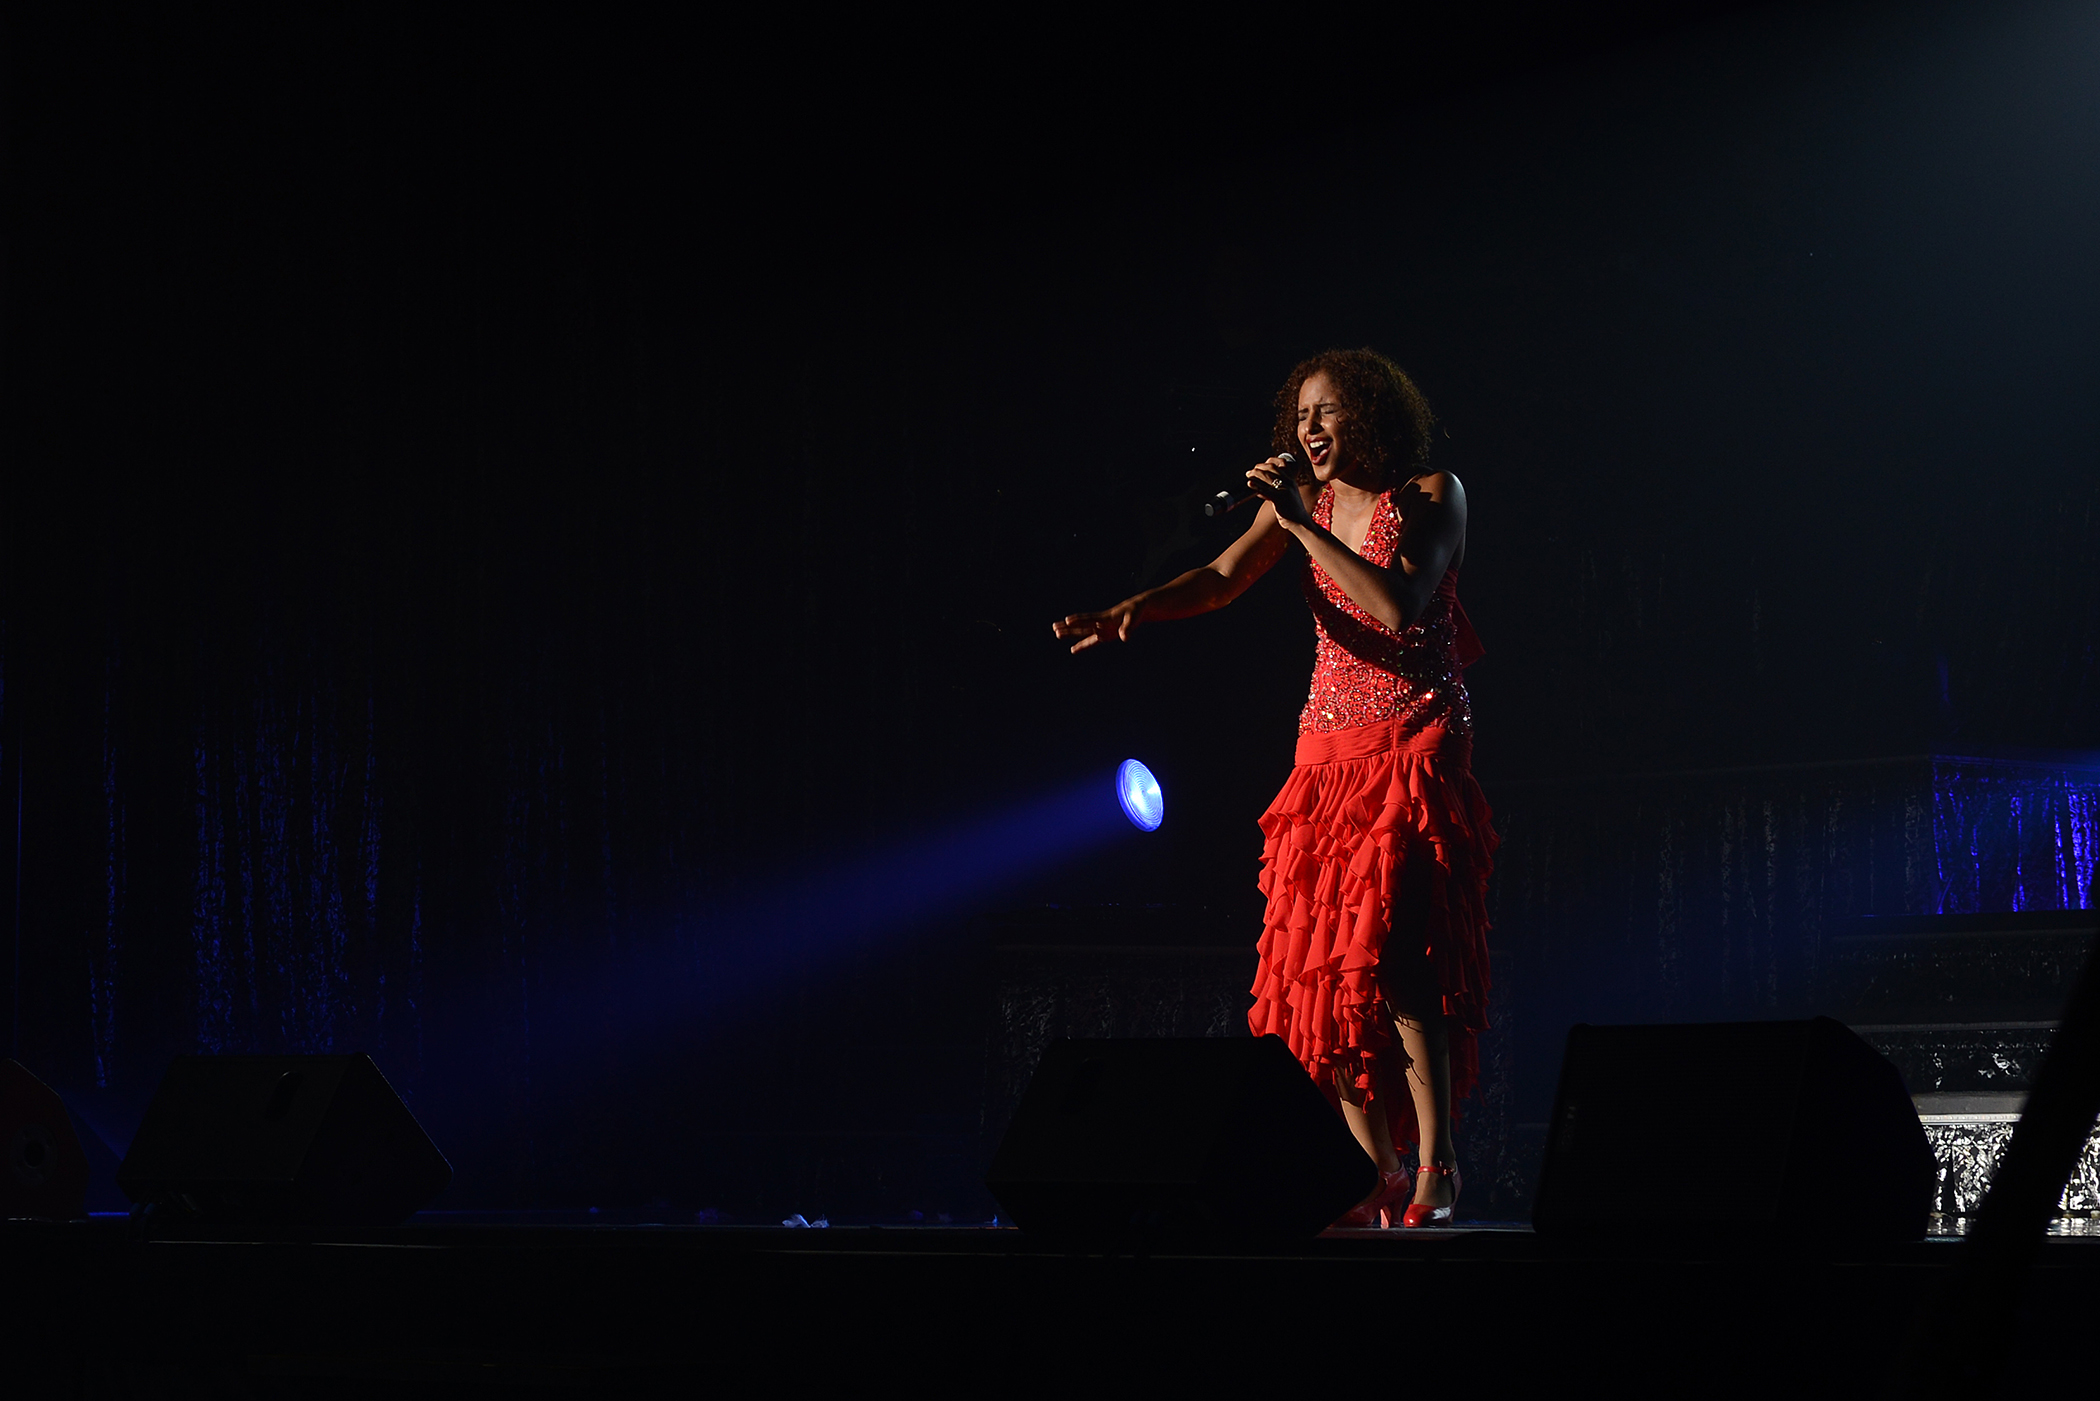 """A vocalist with Tops in Blue performs Donna Summer's """"Last Dance"""" at Yokota Air Base, Japan, July 19, 2015. The show's theme was America's musical history through the 20th century. (U.S. Air Force photo by Airman 1st Class David C. Danford/Released)"""